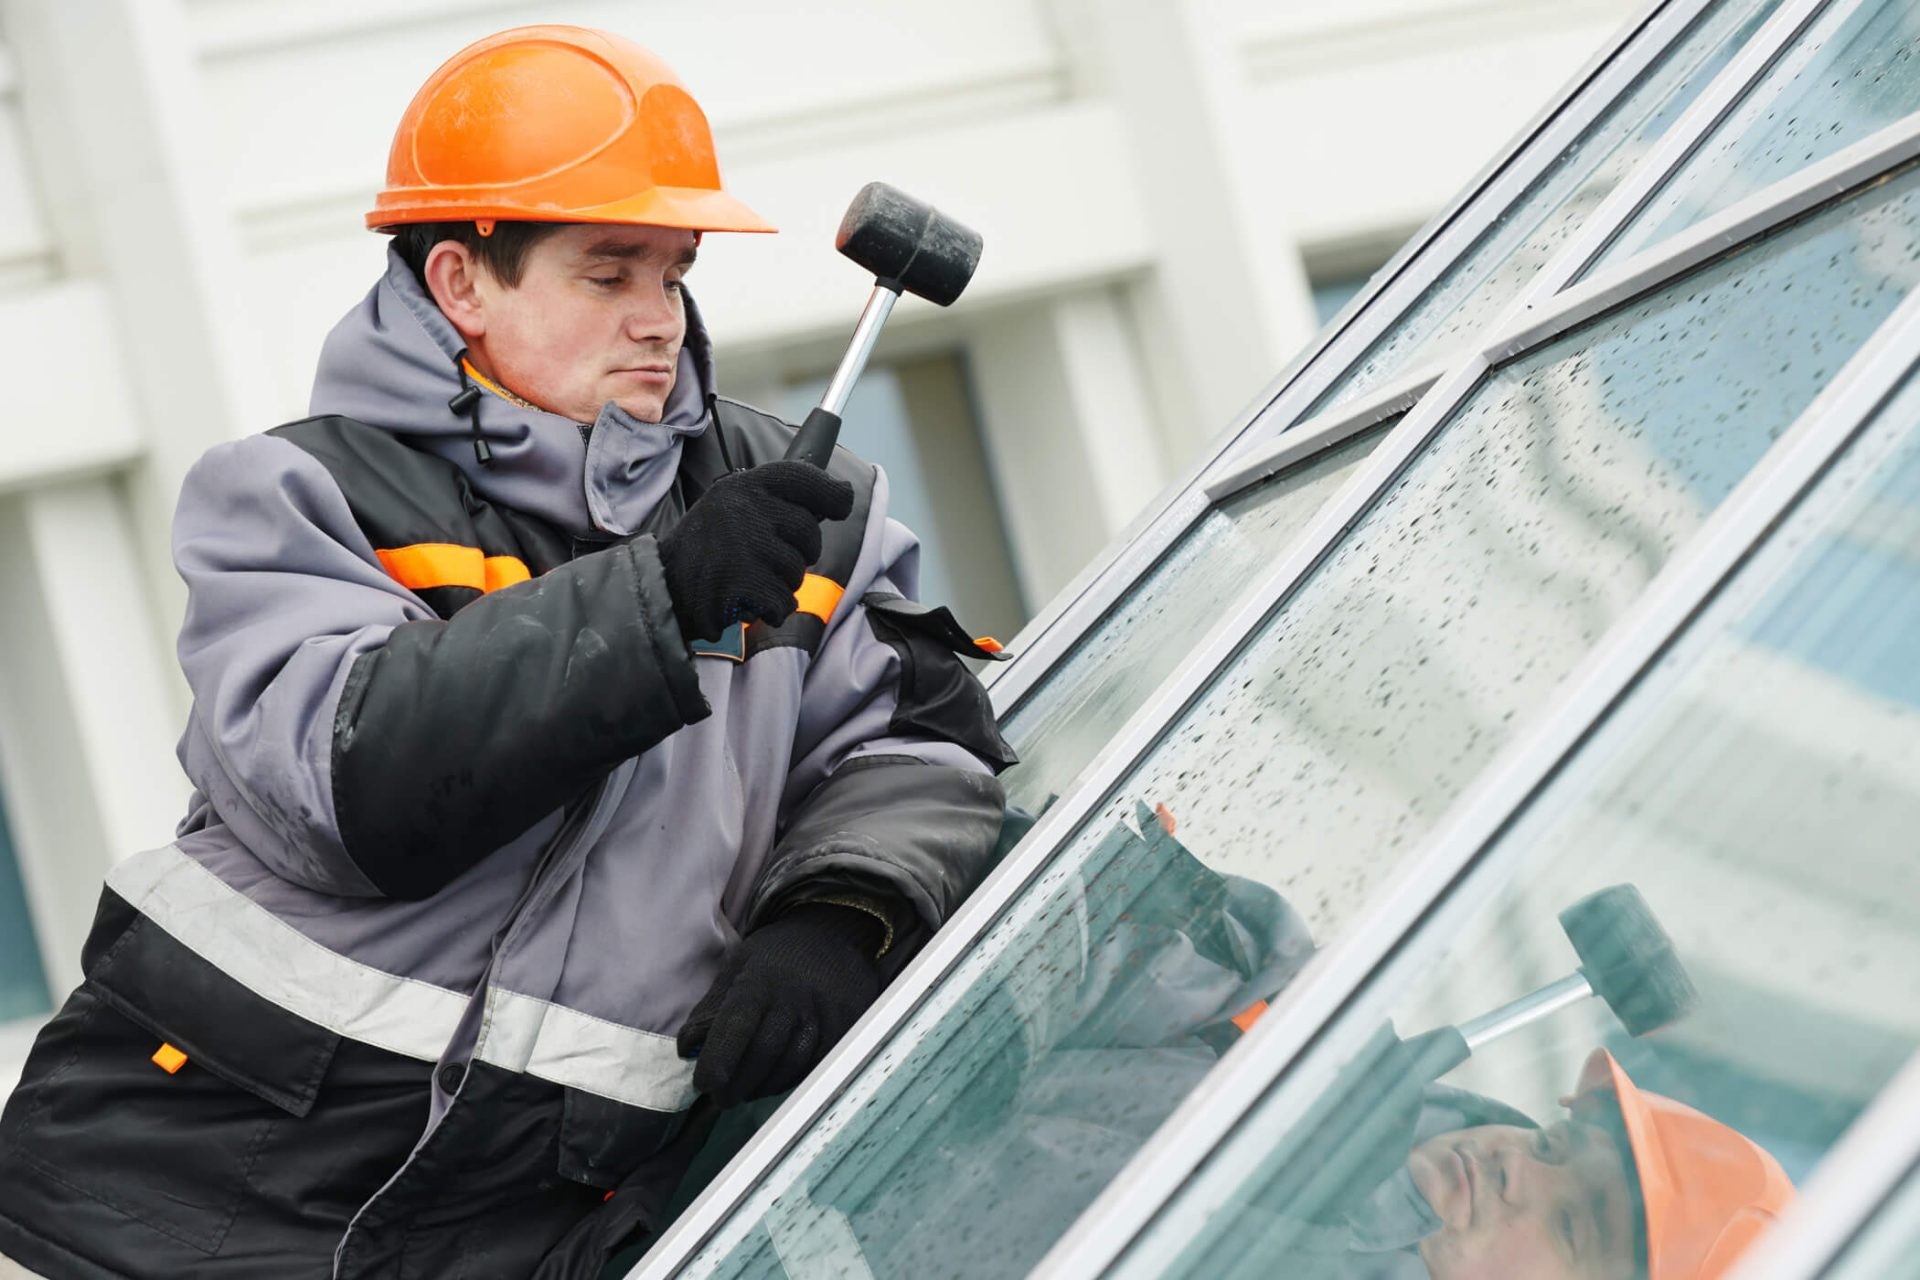 Glazier Accident - Injury Lawyer